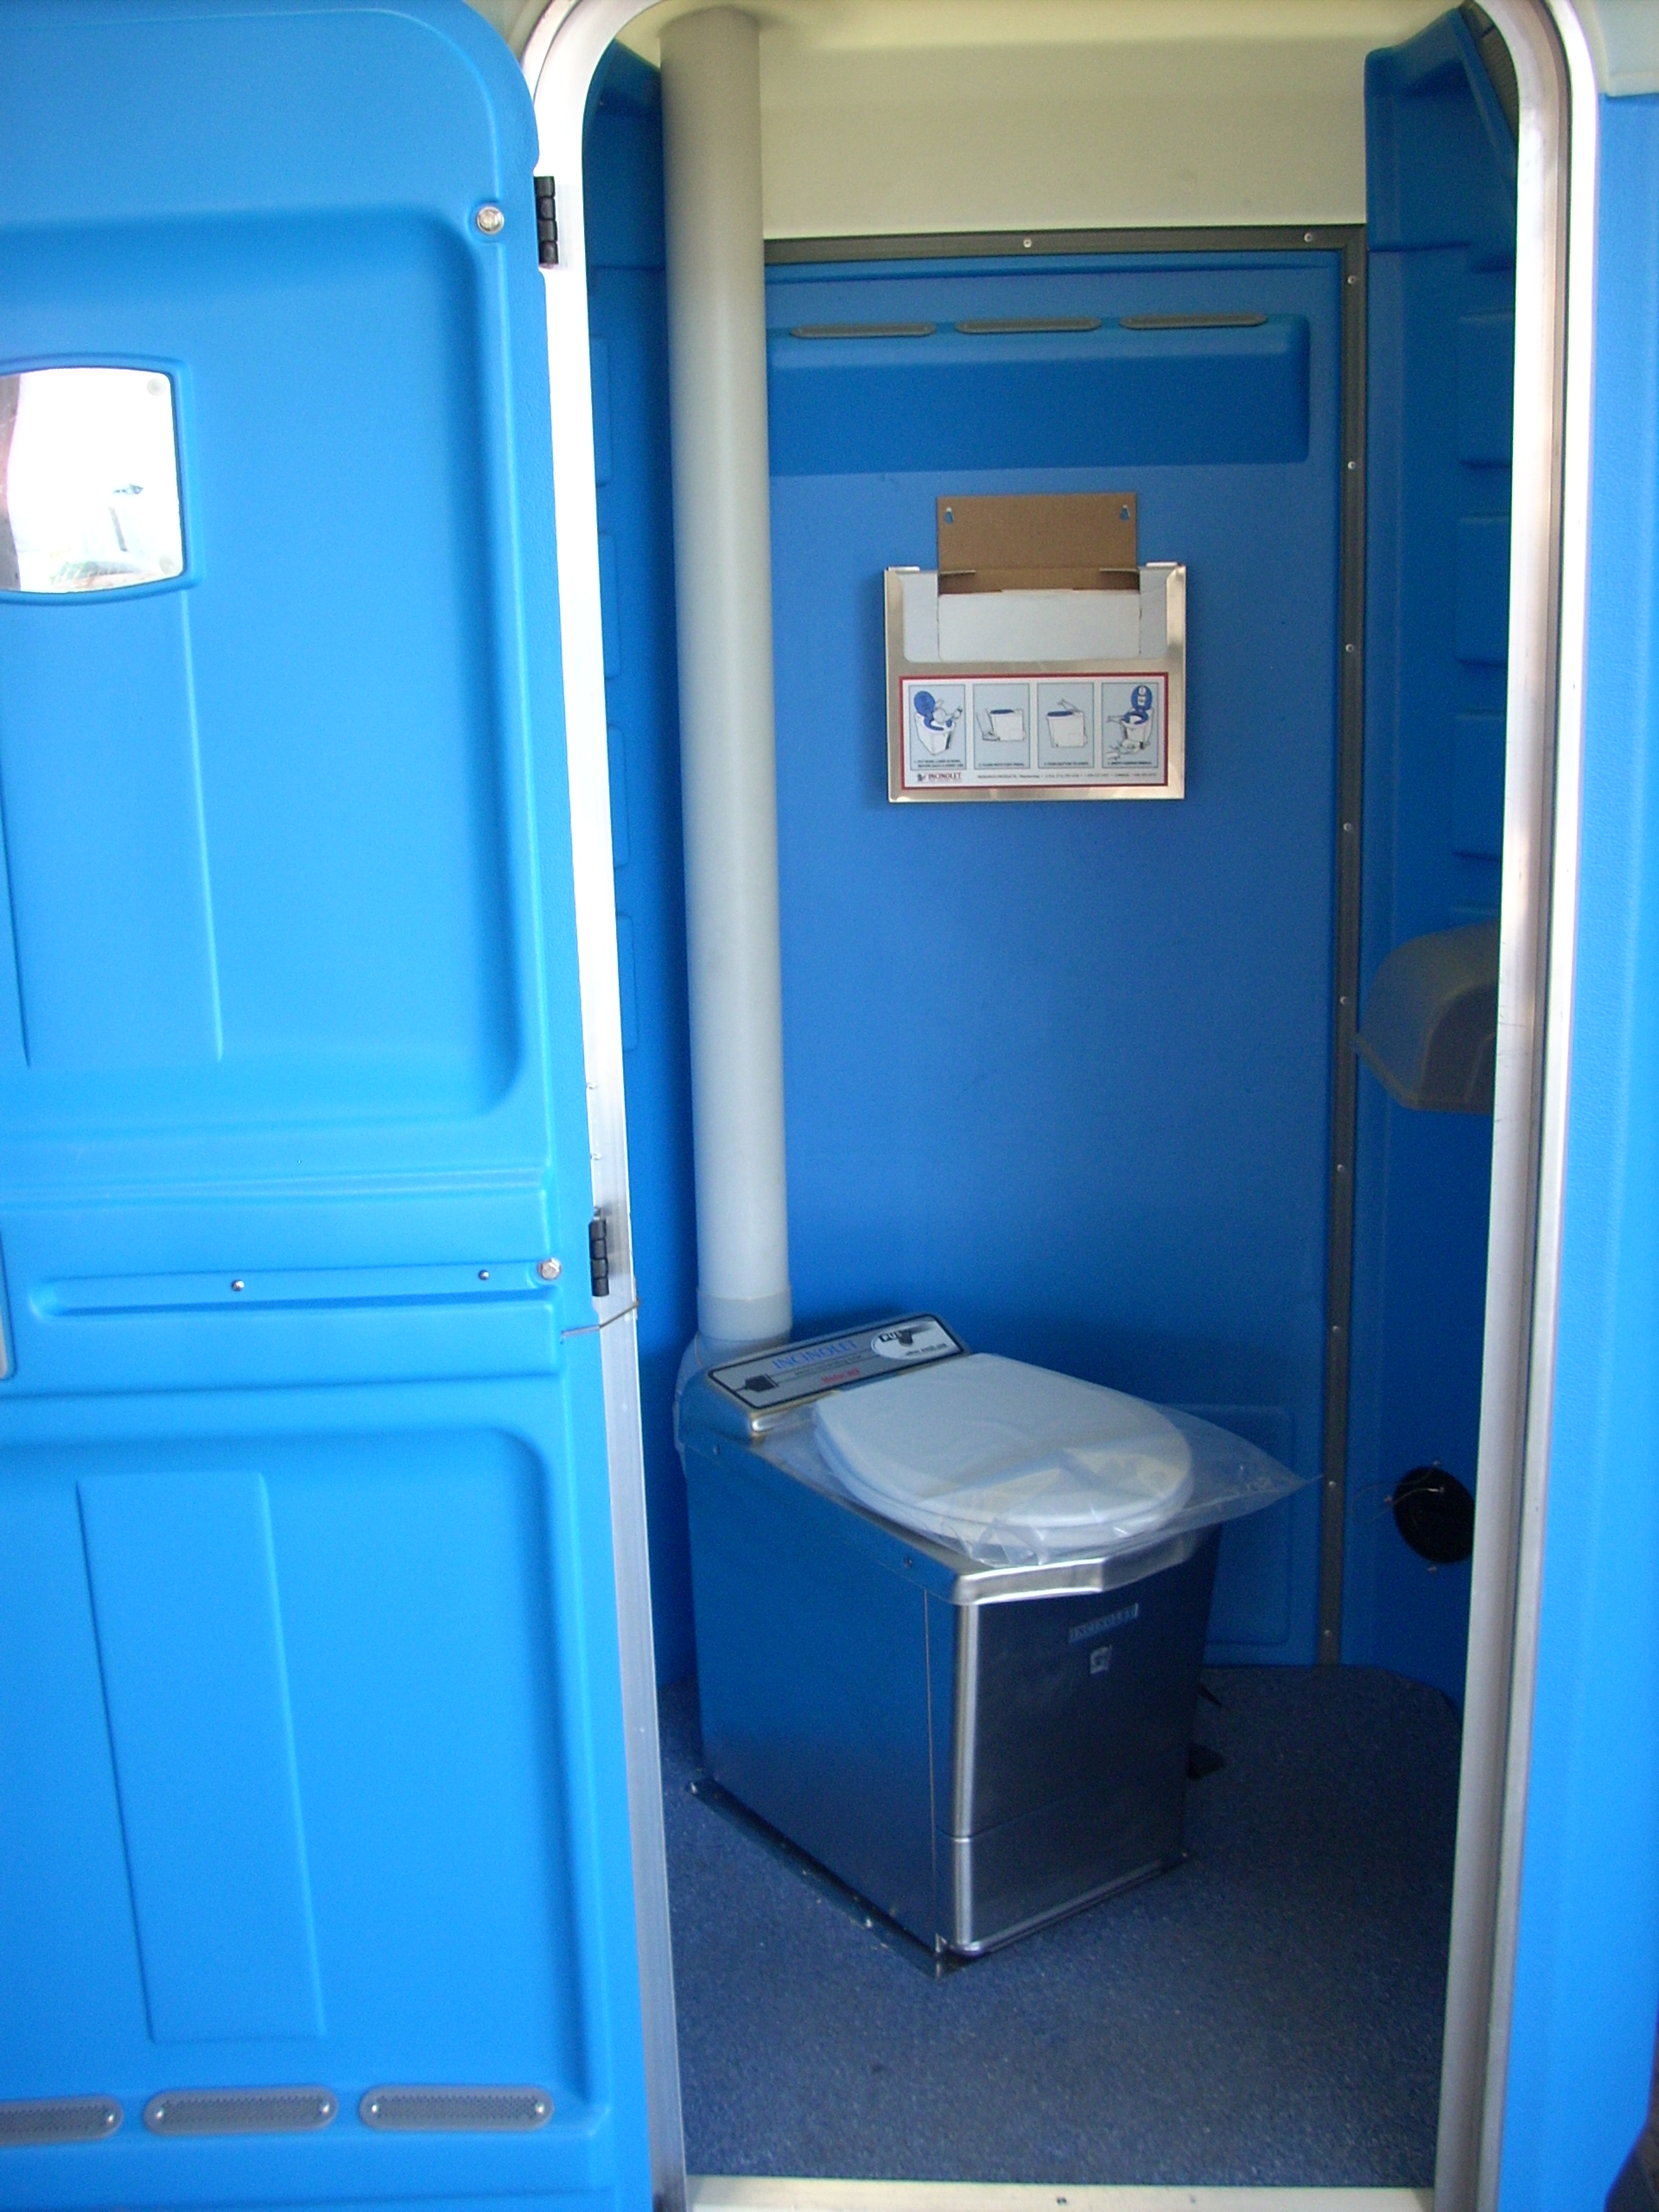 Incinolet-Electric-Toilet.jpg